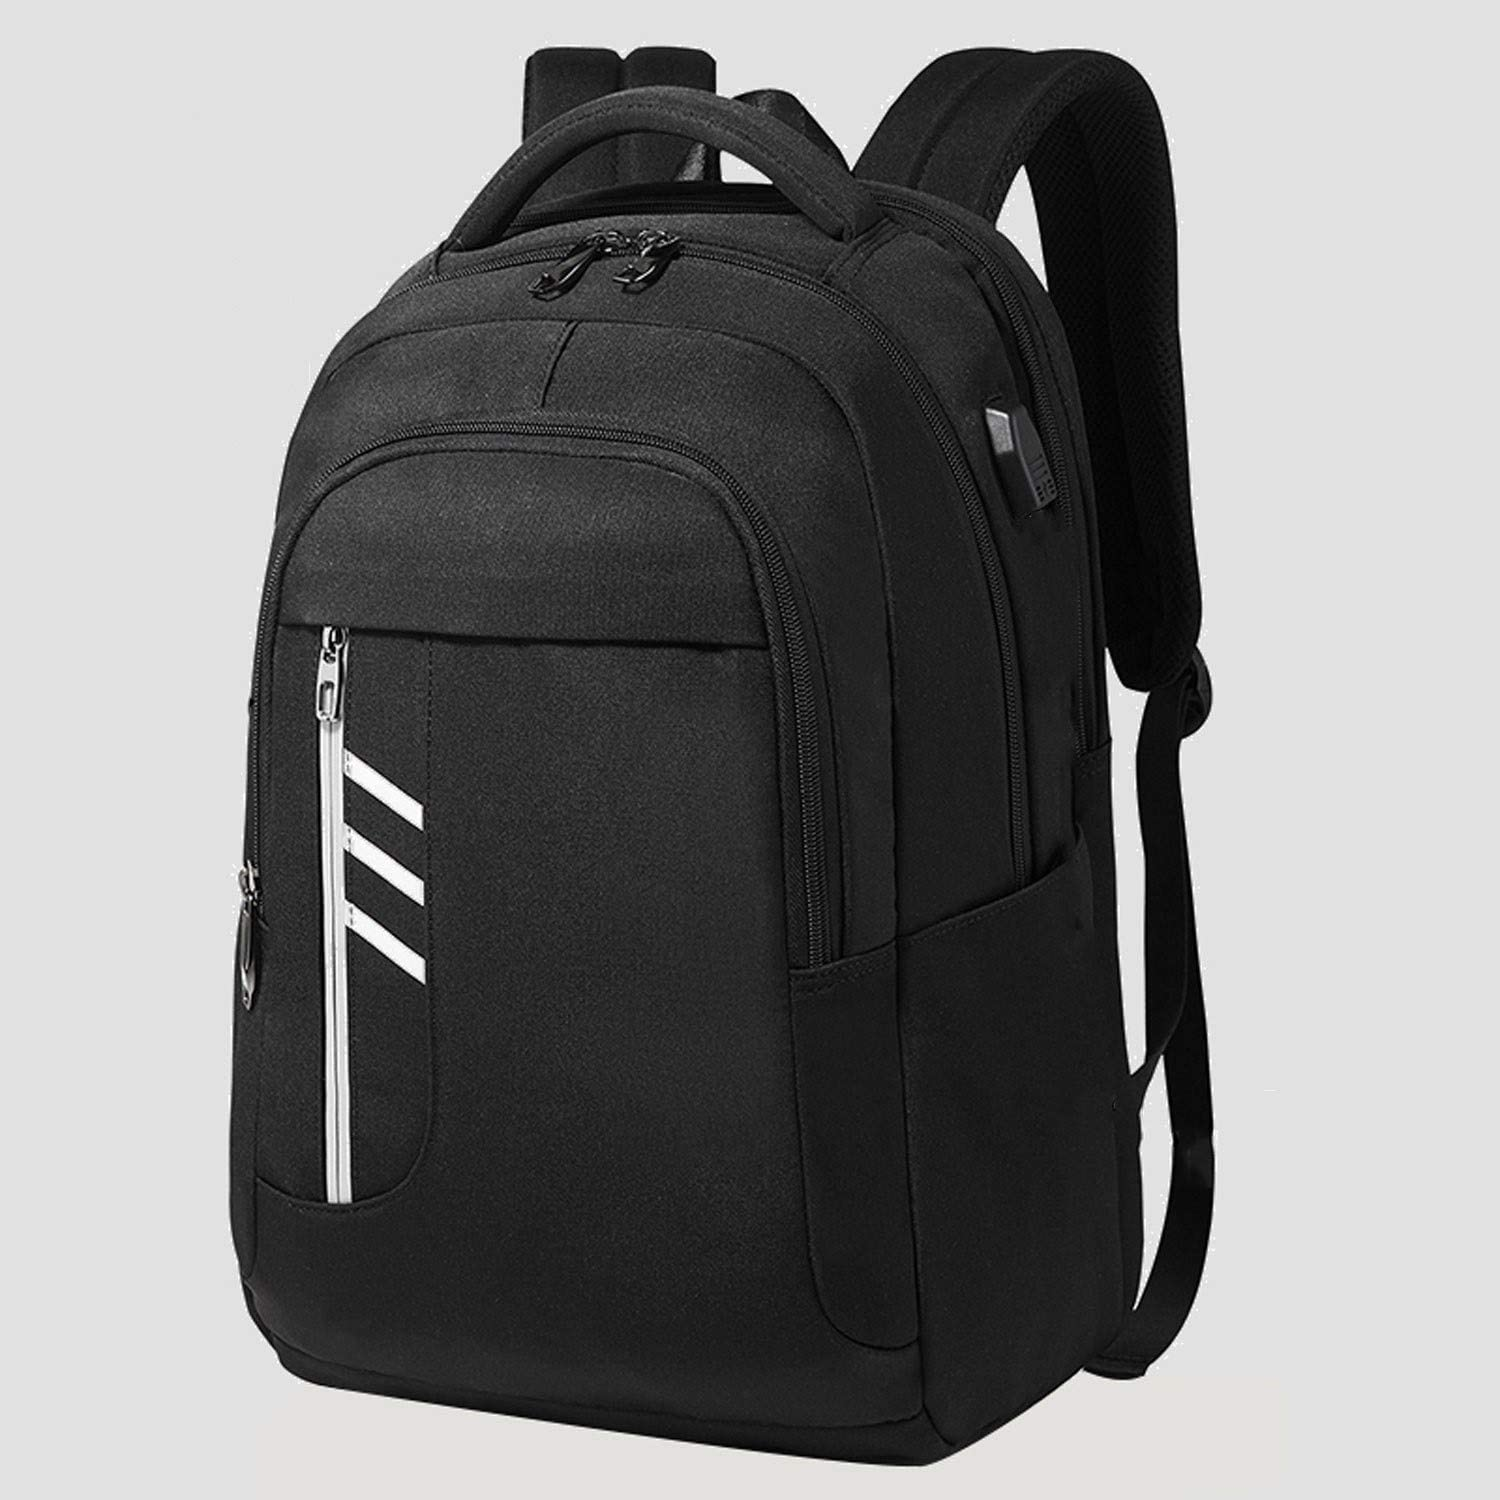 Color : B Waterproof Travel High-Capacity Sports Simple Business Backpack with USB Charging Port and Headphone Jack Suitable for 15.6-inch Laptop Laptop Backpack